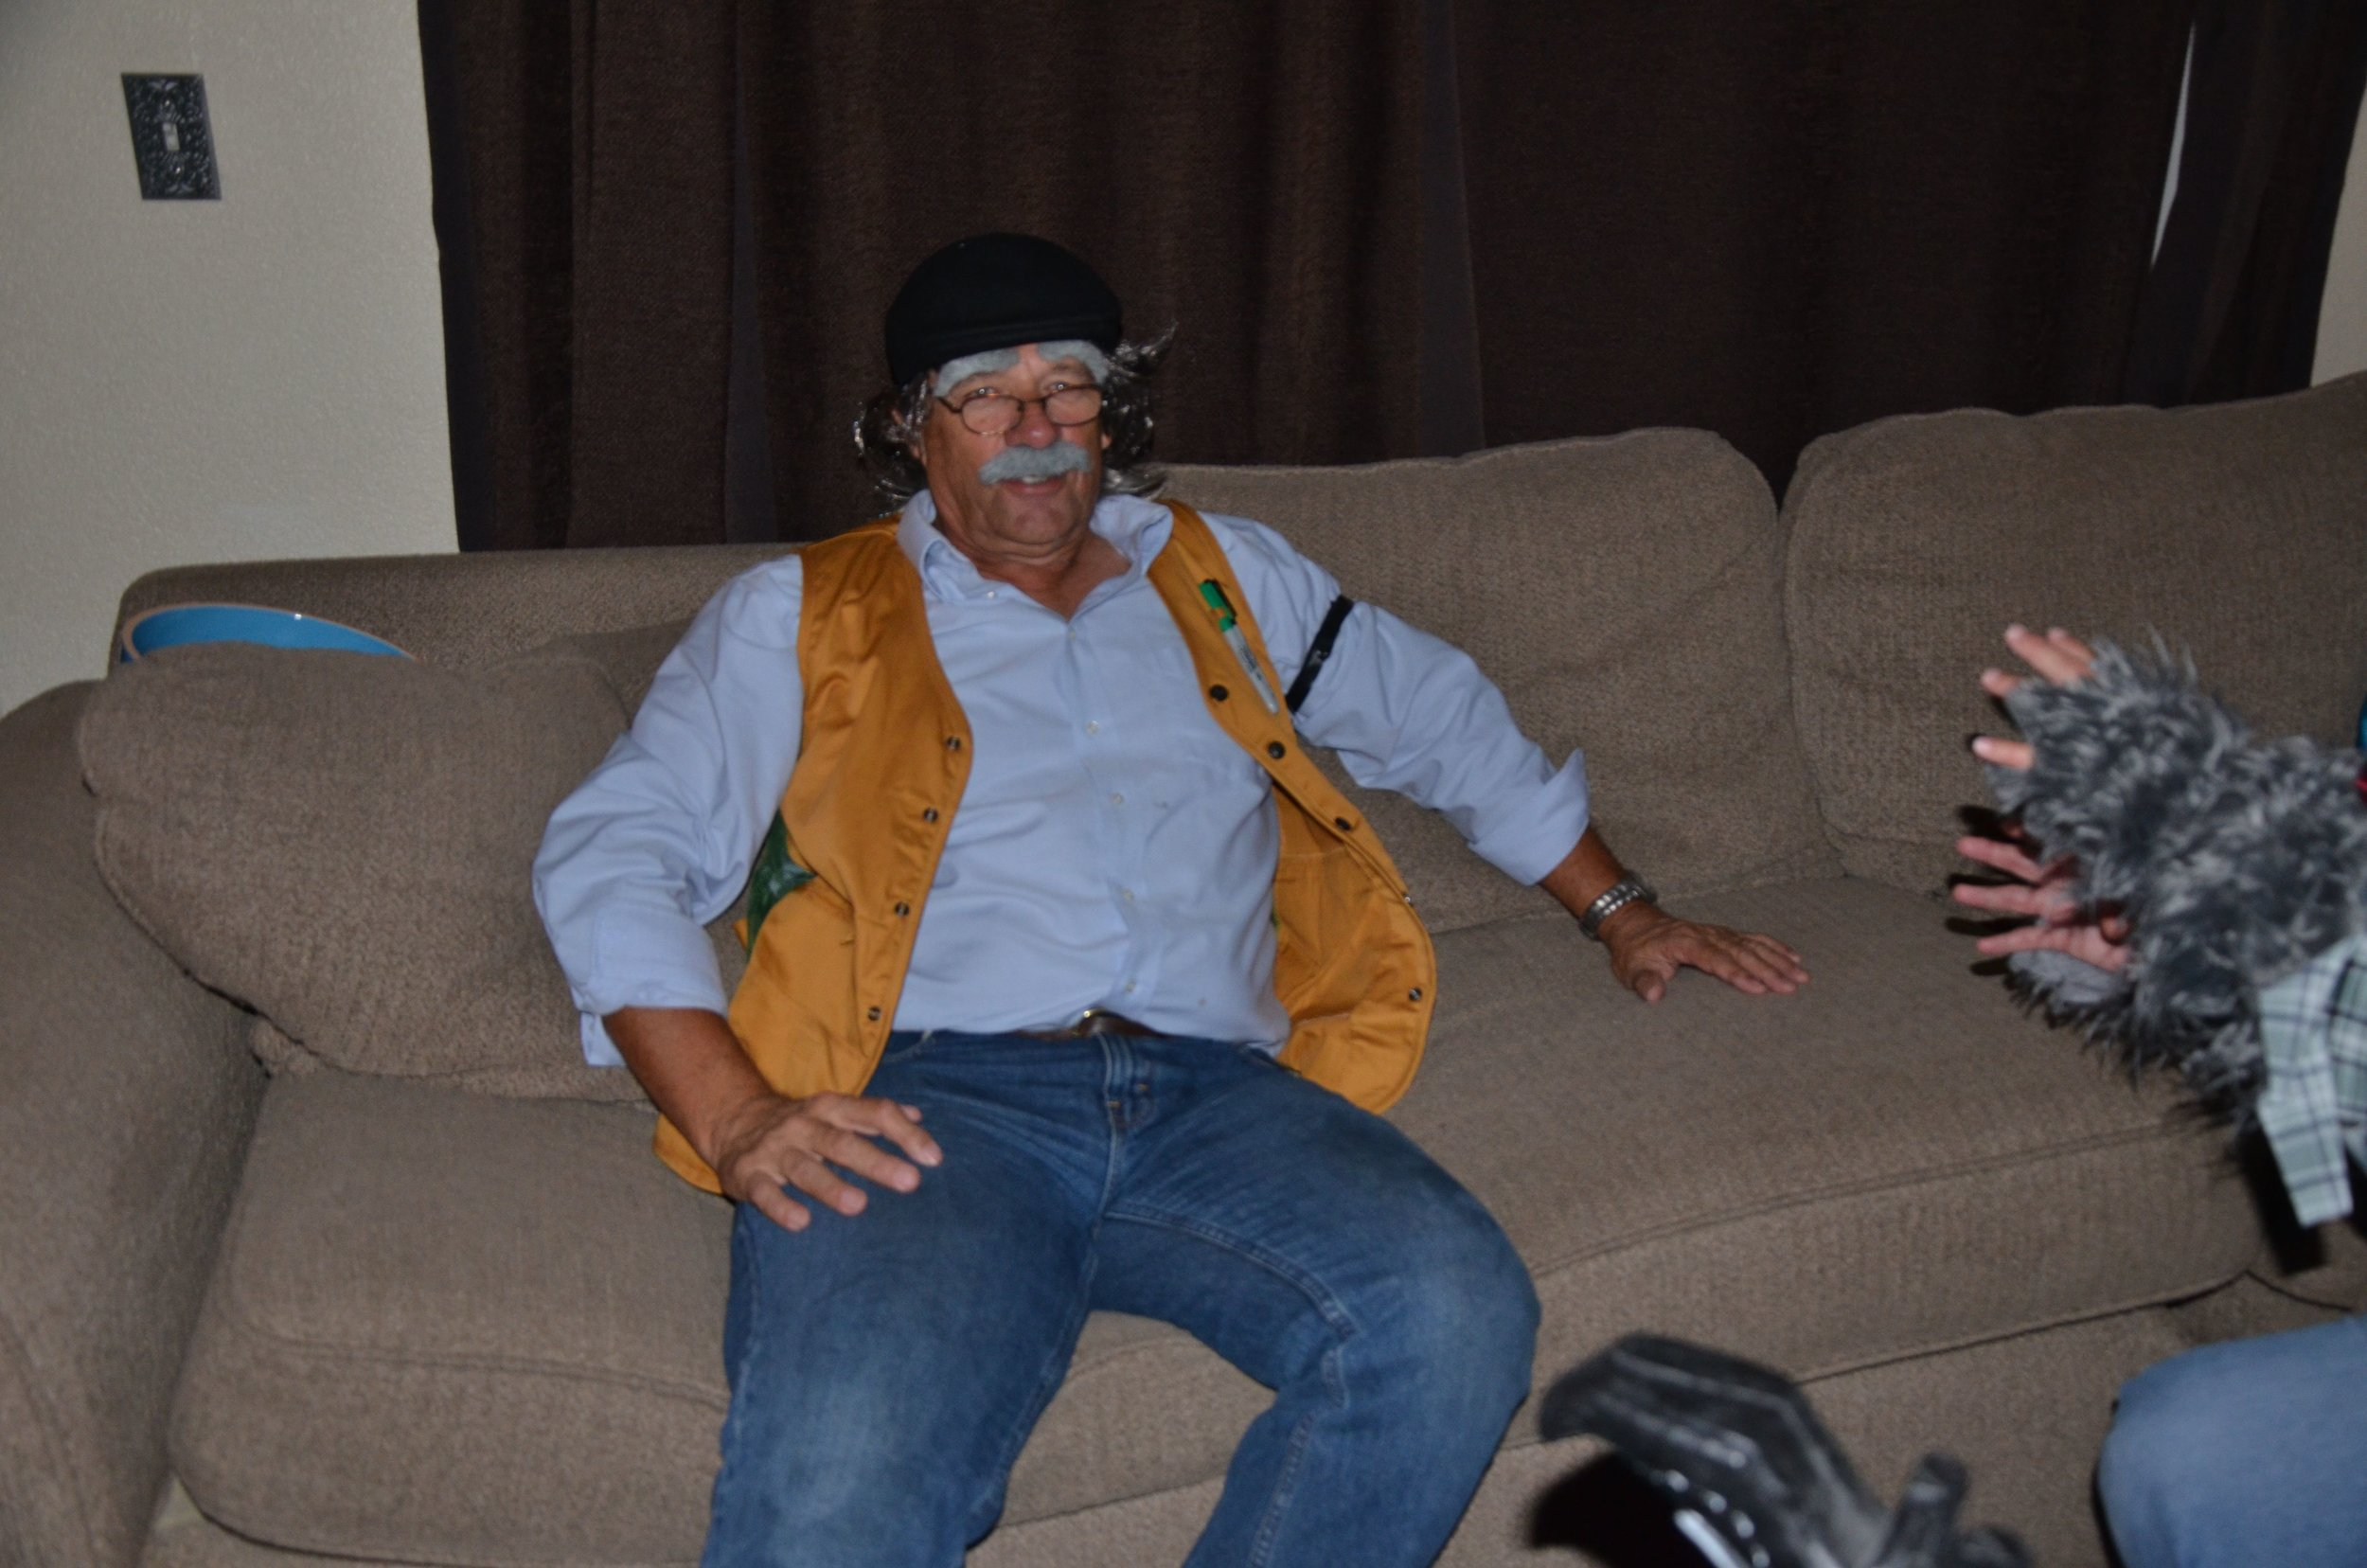 My dad dressed as Evil Geppetto. He always embraces our craziness!